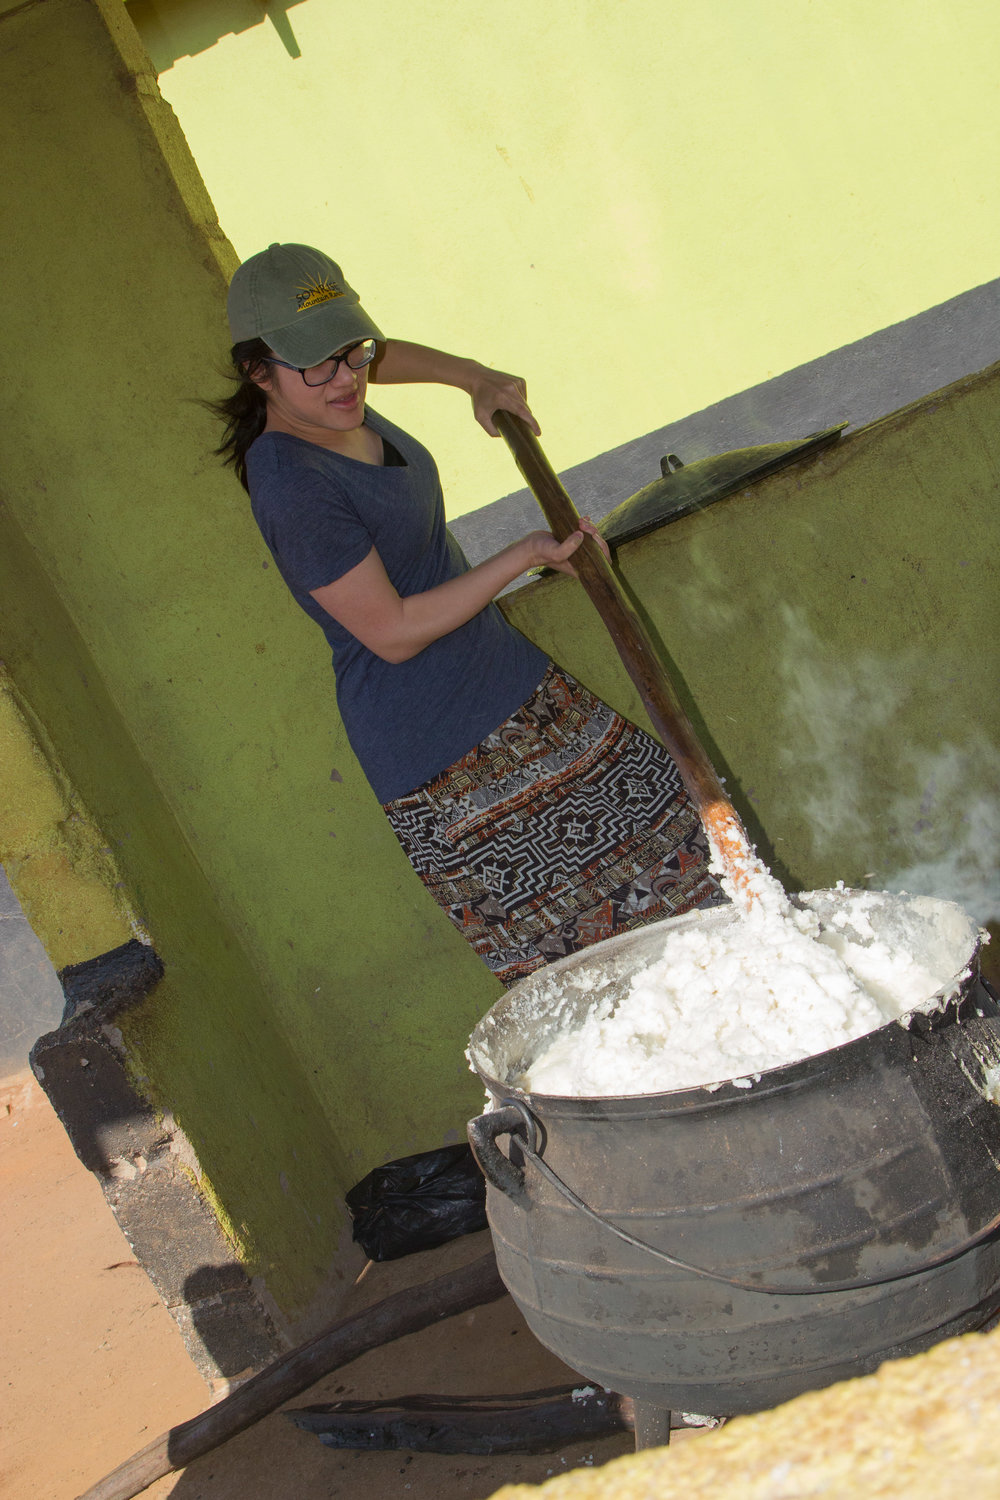 Anna trying to stir the maize meal